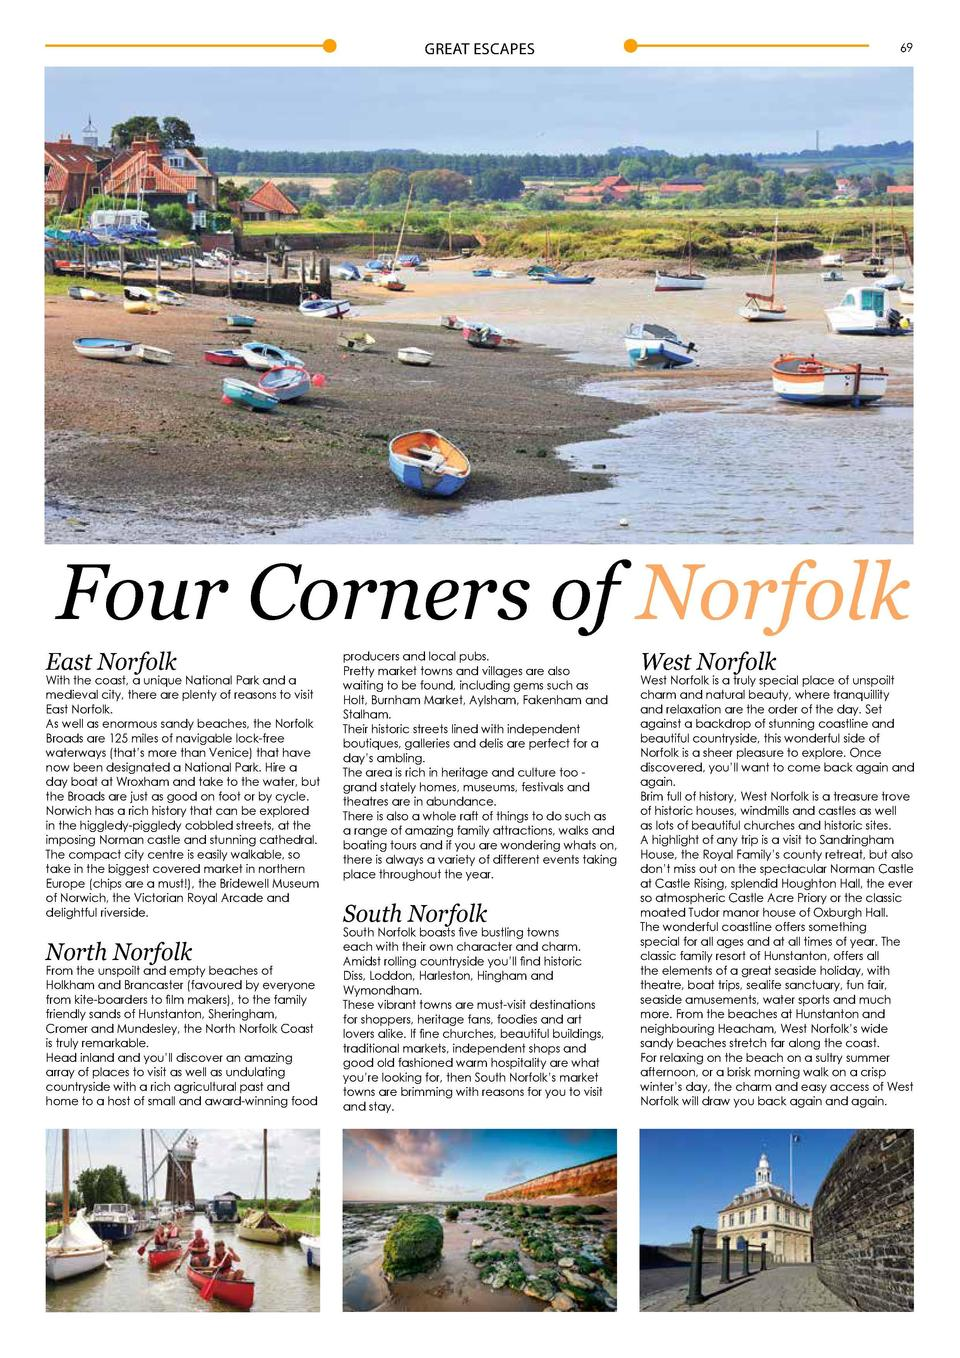 GREAT ESCAPES  68  69  Four Corners of Norfolk East Norfolk  With the coast, a unique National Park and a medieval city, t...